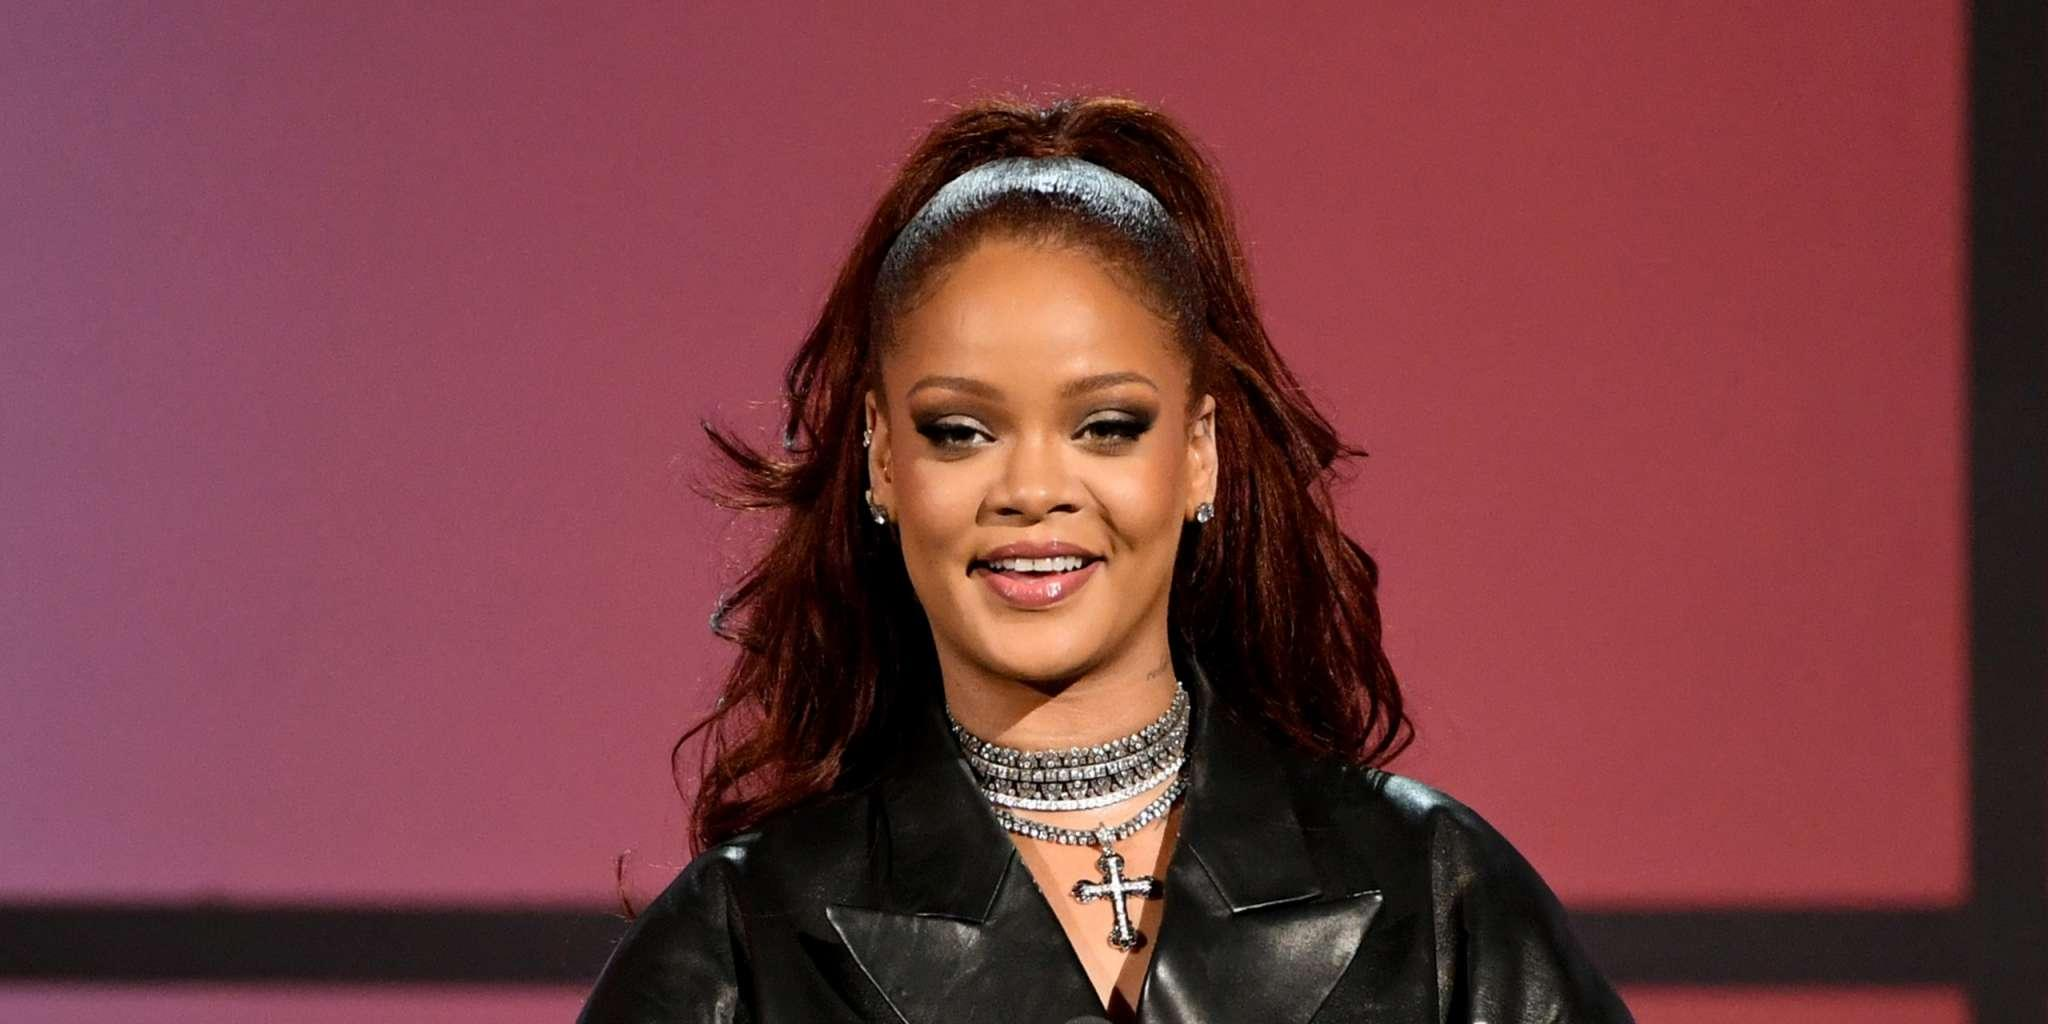 Rihanna Fans Super Excited After She Teases New Music Is Coming Soon!